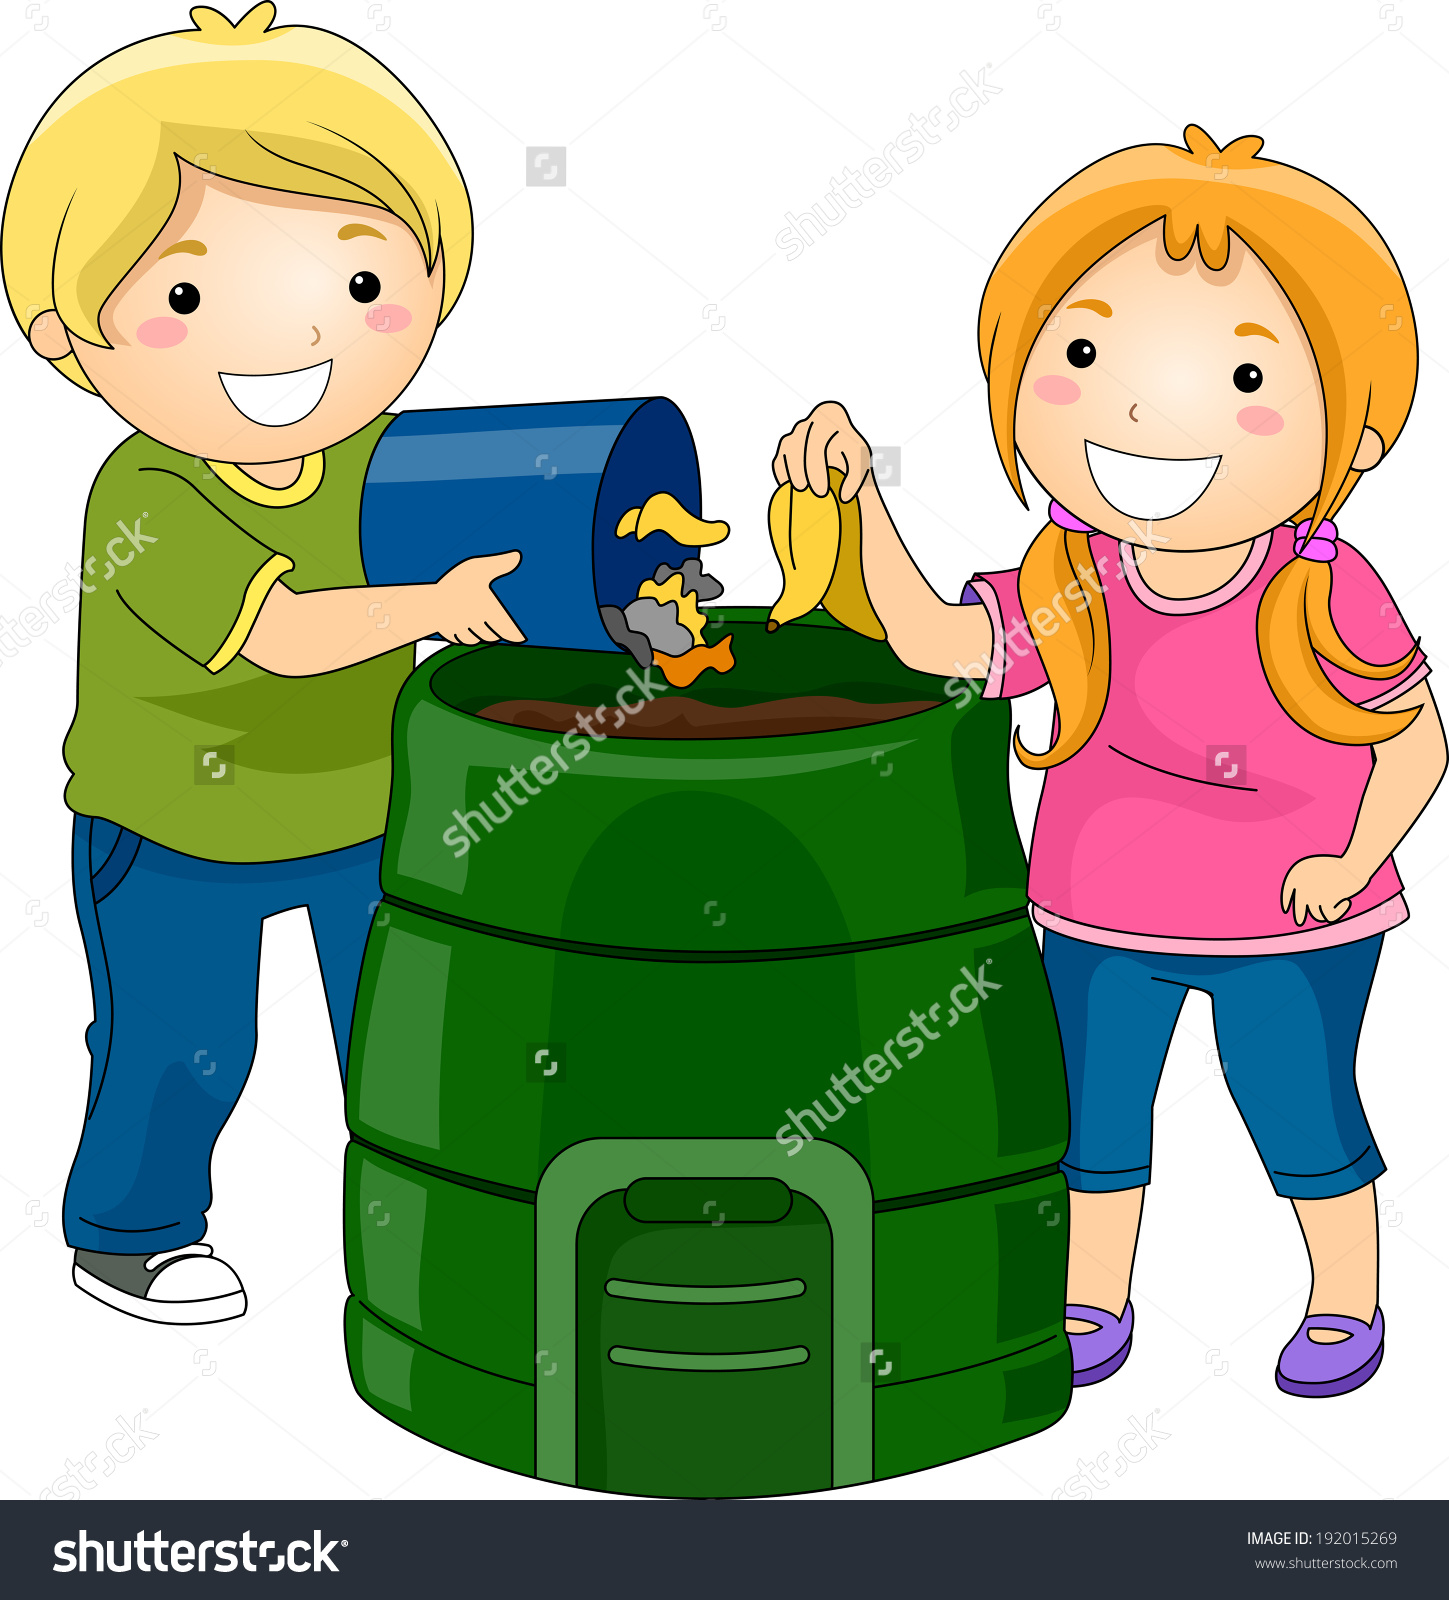 Throw cans clipart - Clipground